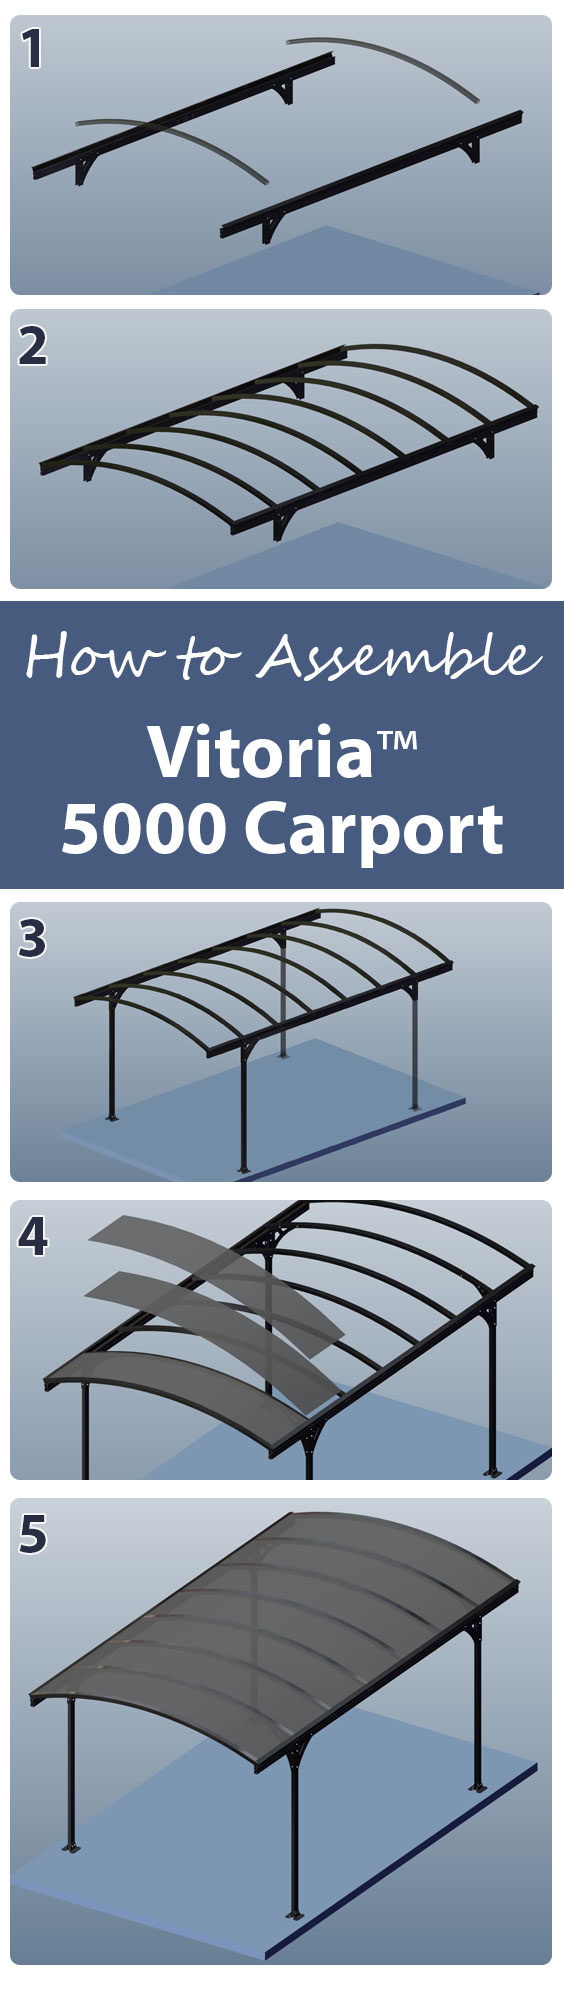 Vitoria 5000 Carport Palram Outdoor Dreams Made Real Carport New Homes Design